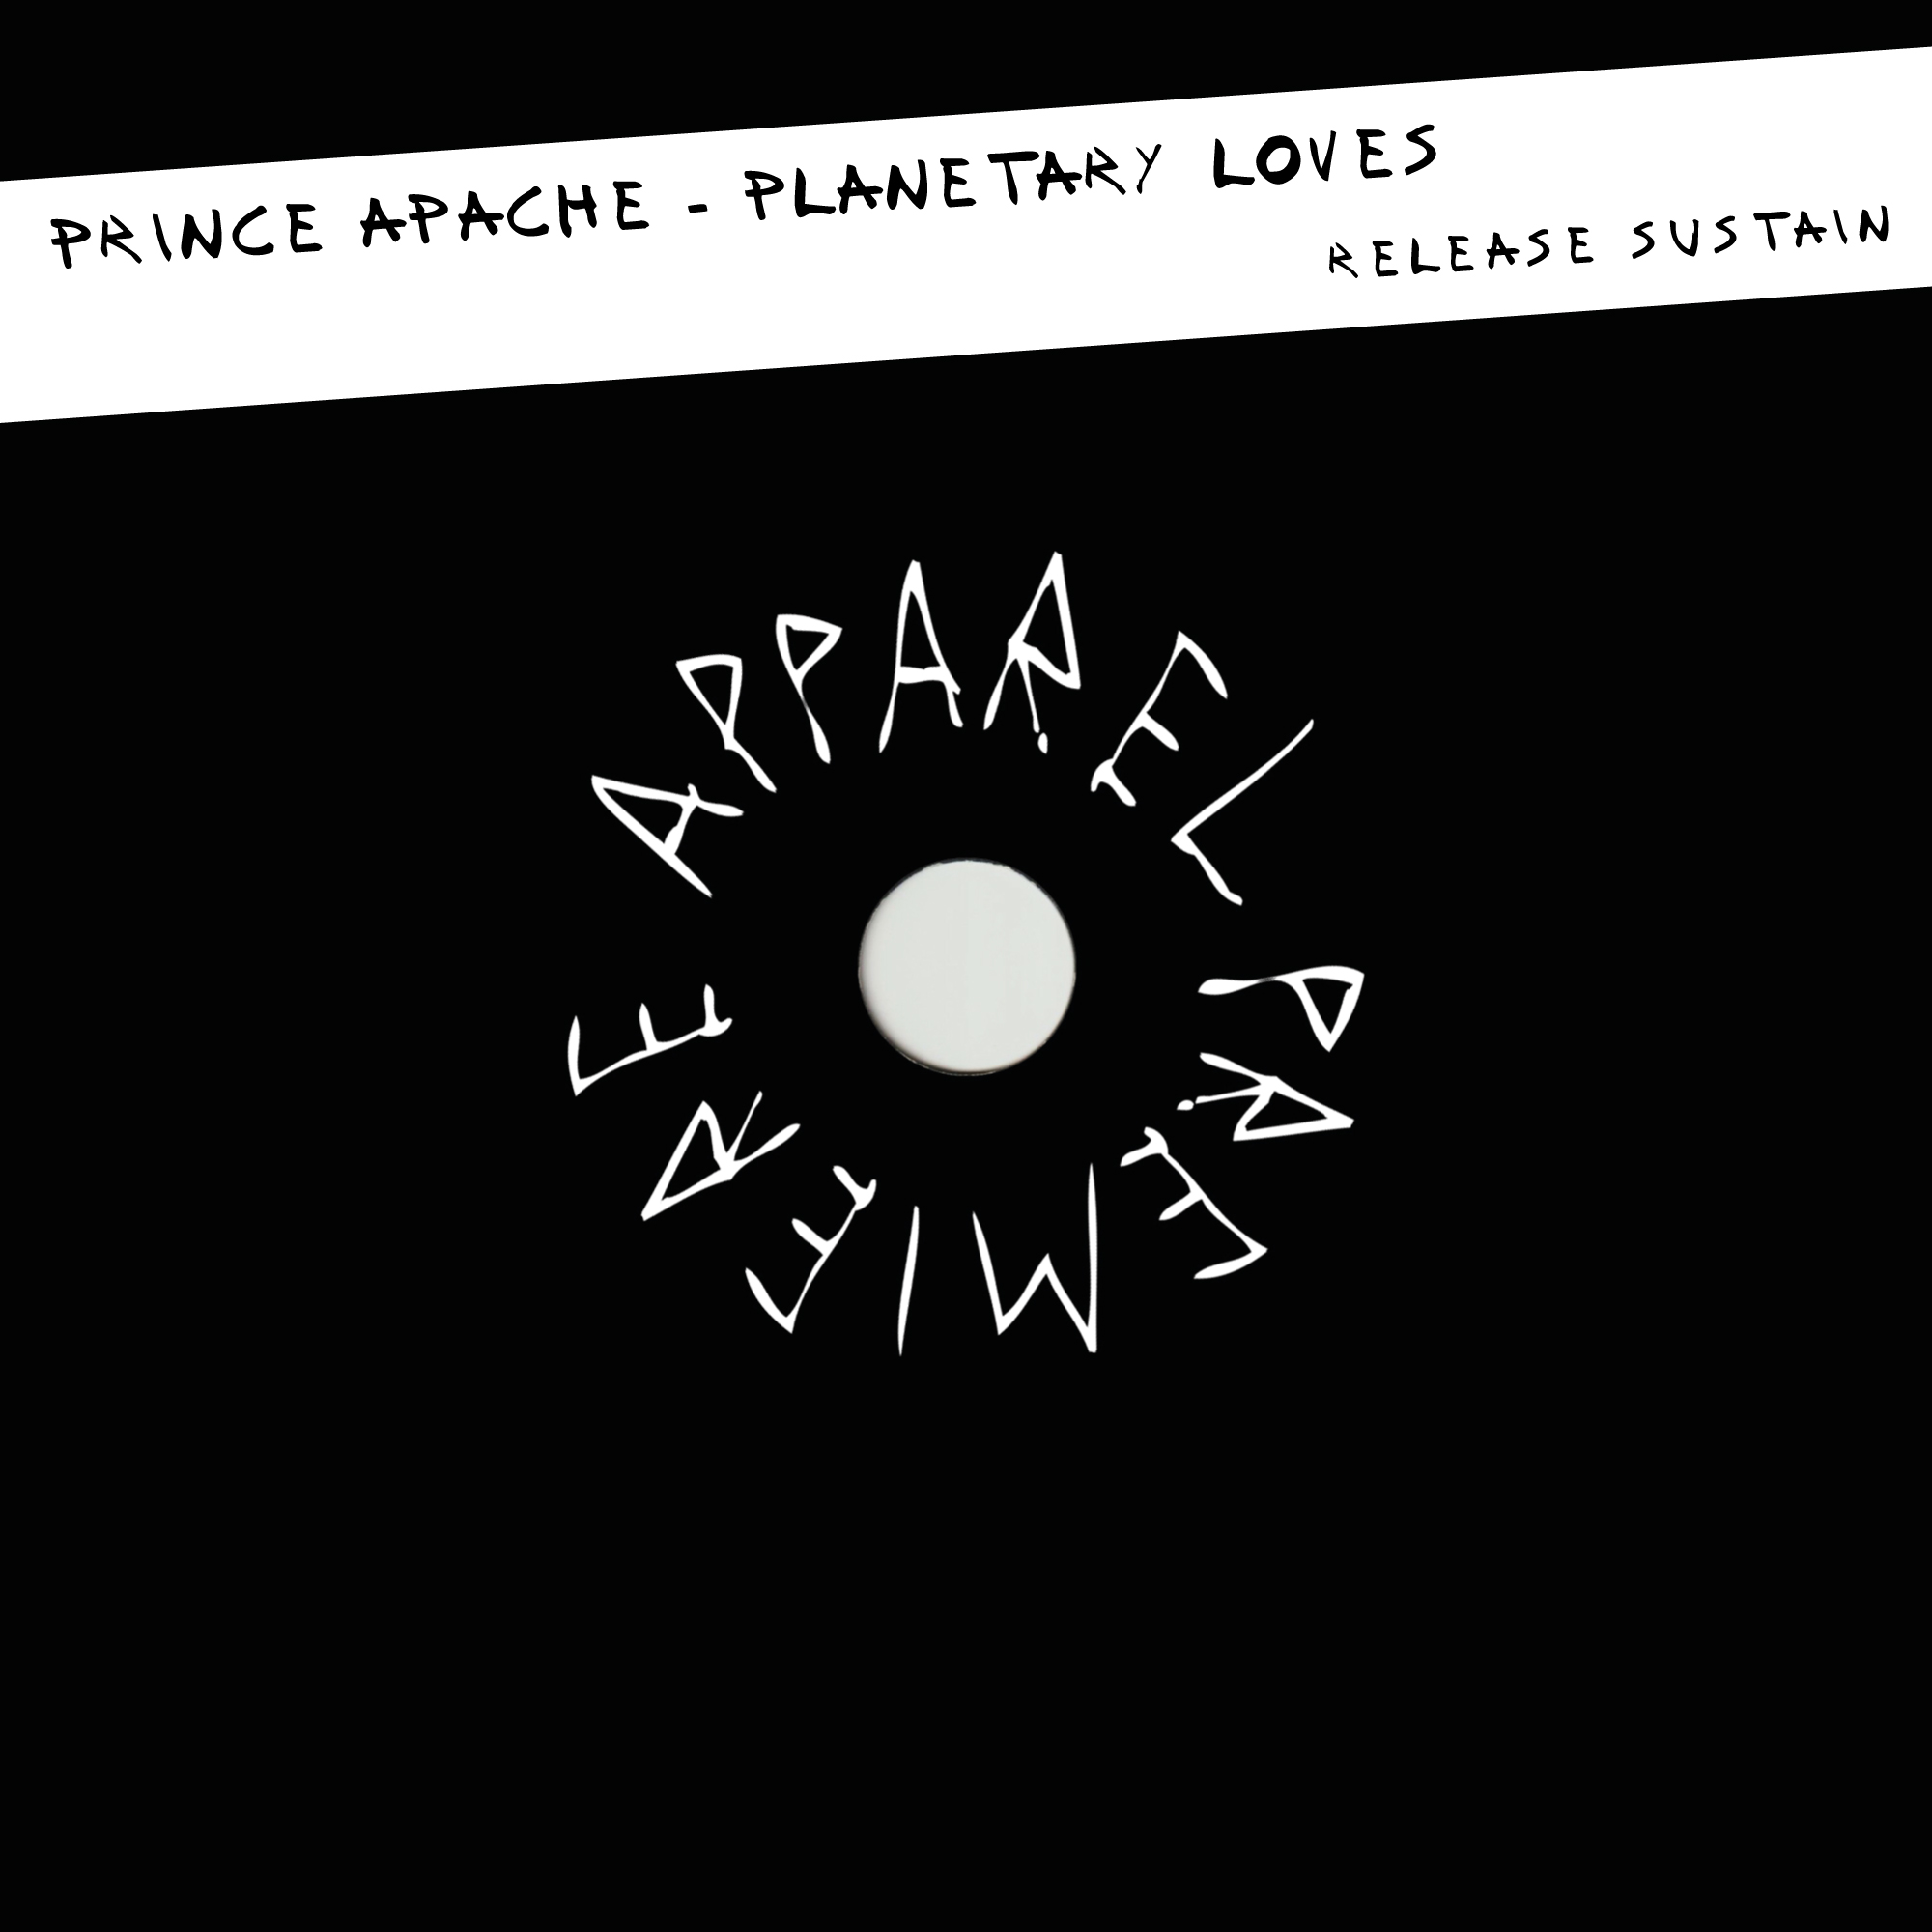 APPAREL PREMIERE: Prince Apache – Planetary Loves [Release Sustain]